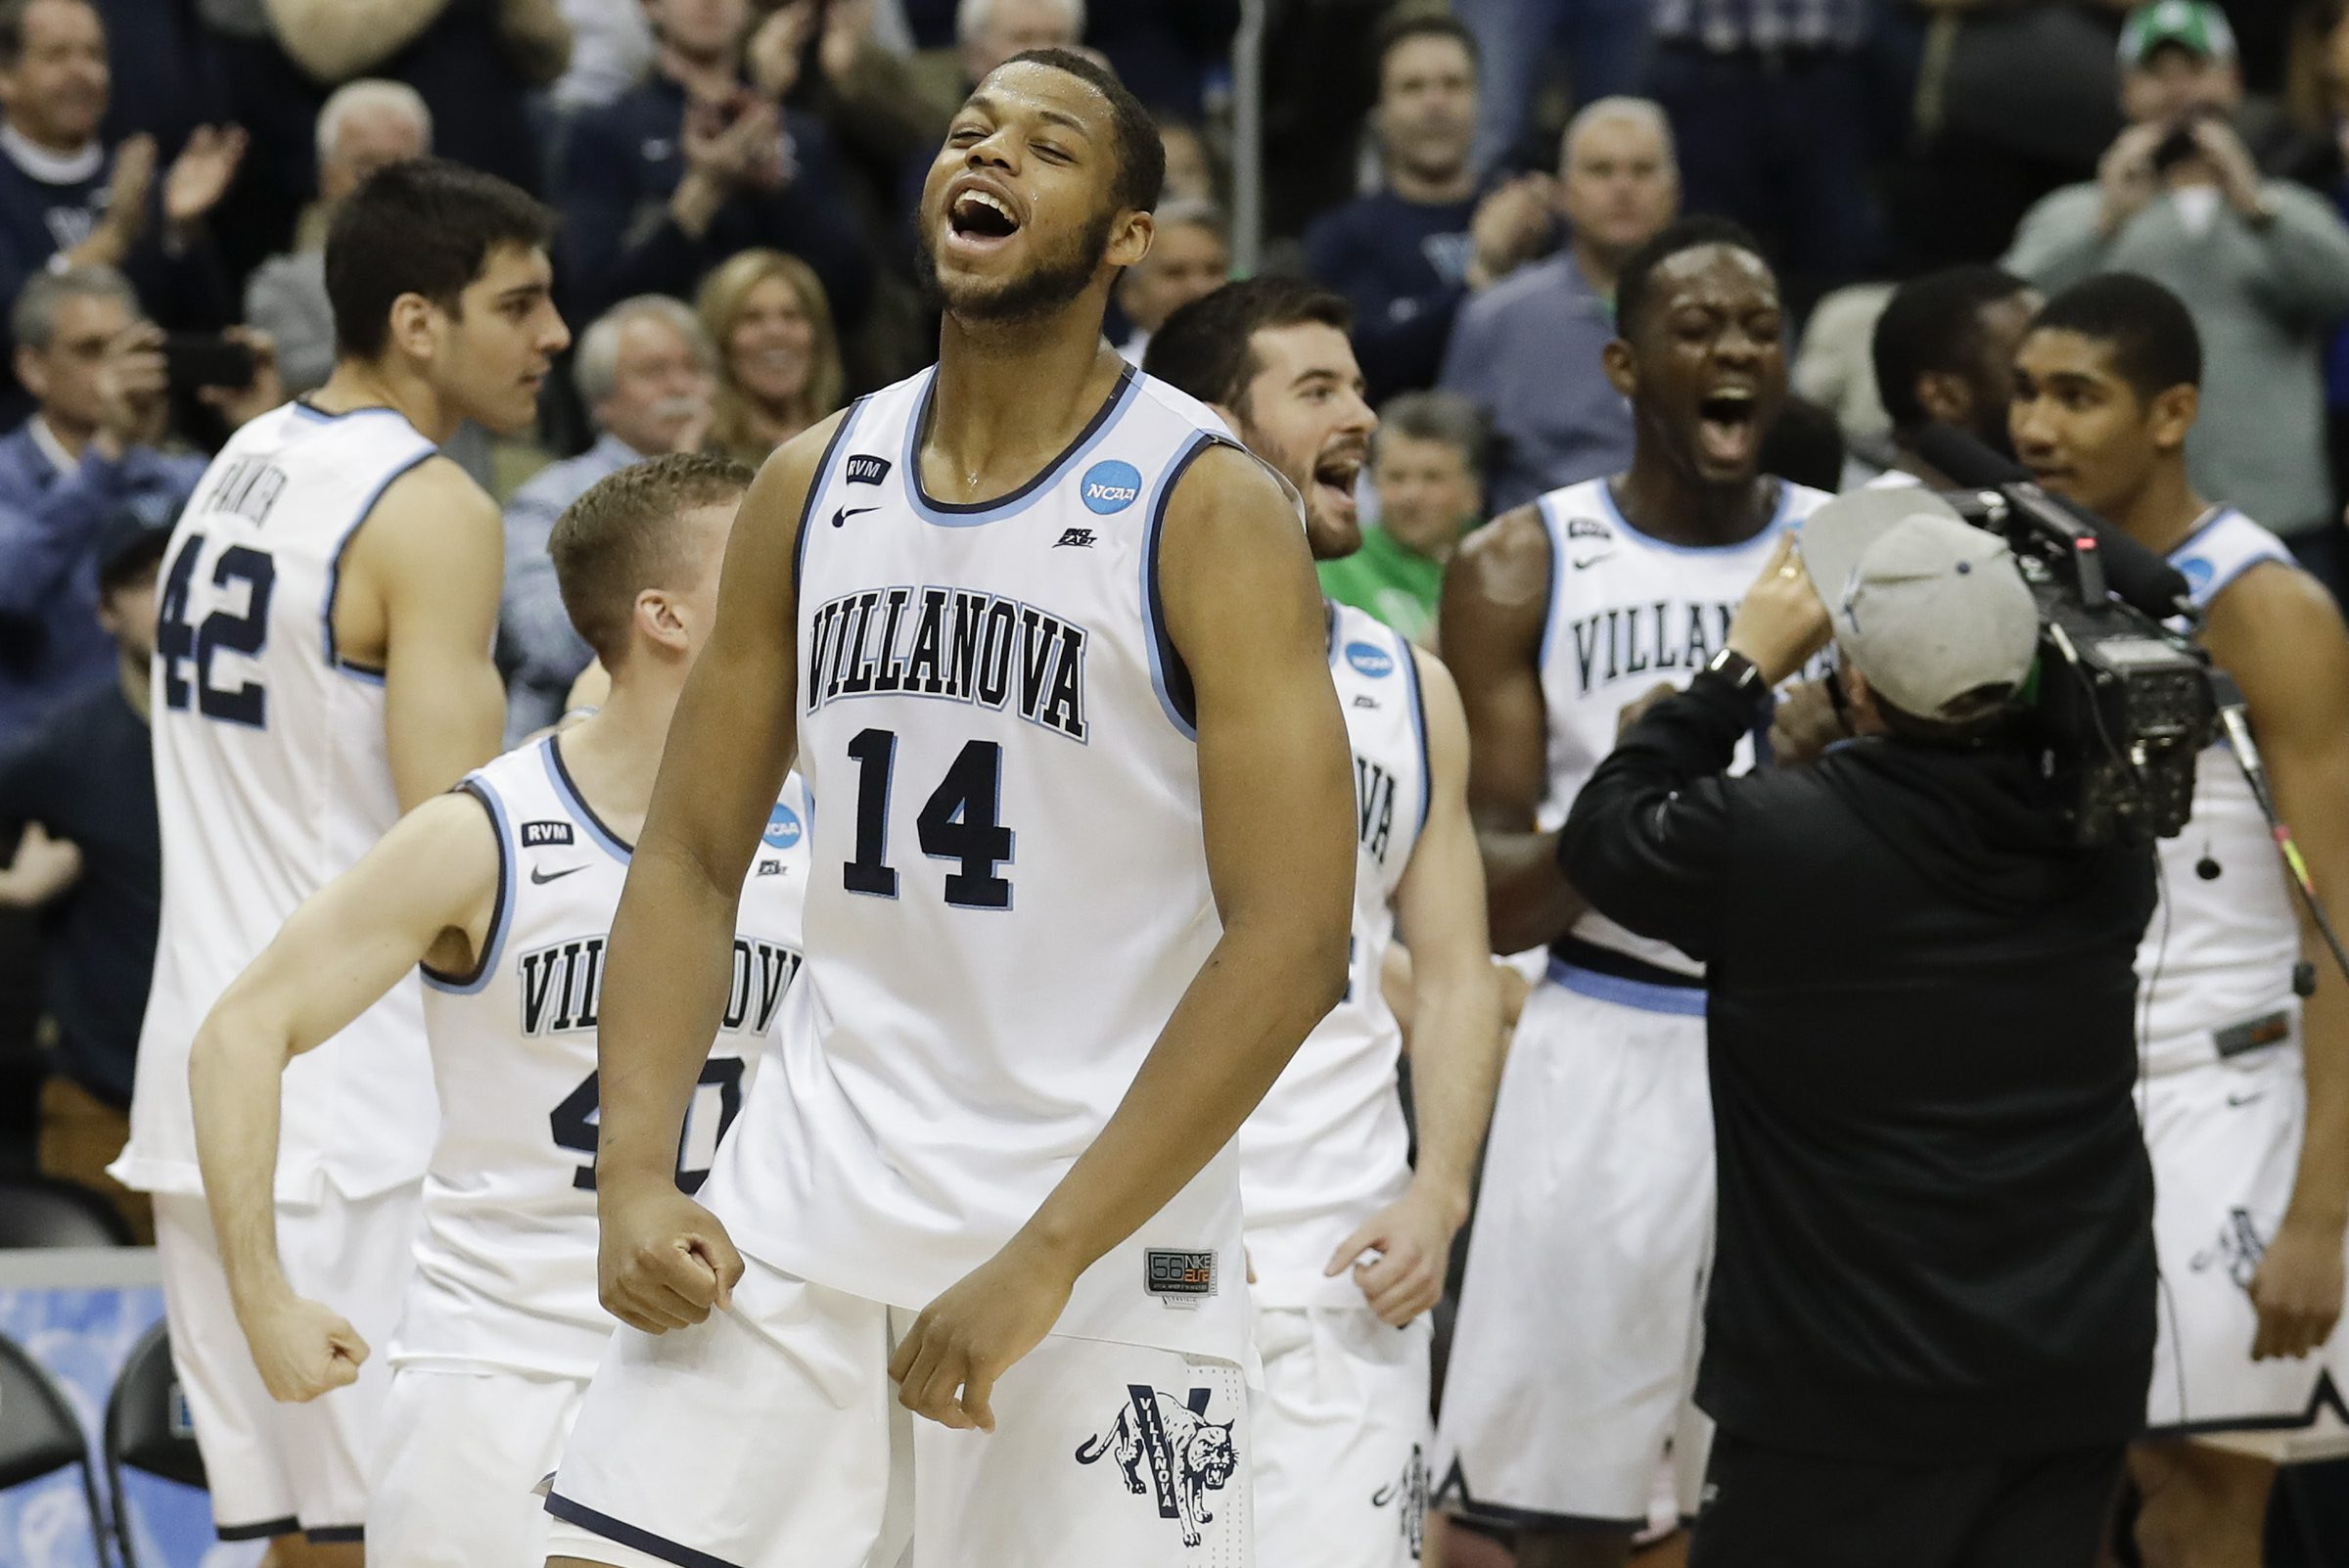 Villanova forward Omari Spellman yells after Villanova beat Alabama in the second-round of the NCAA men´s basketball tournament on Saturday, March 17, 2018 at PPG Paints Arena in Pittsburgh.